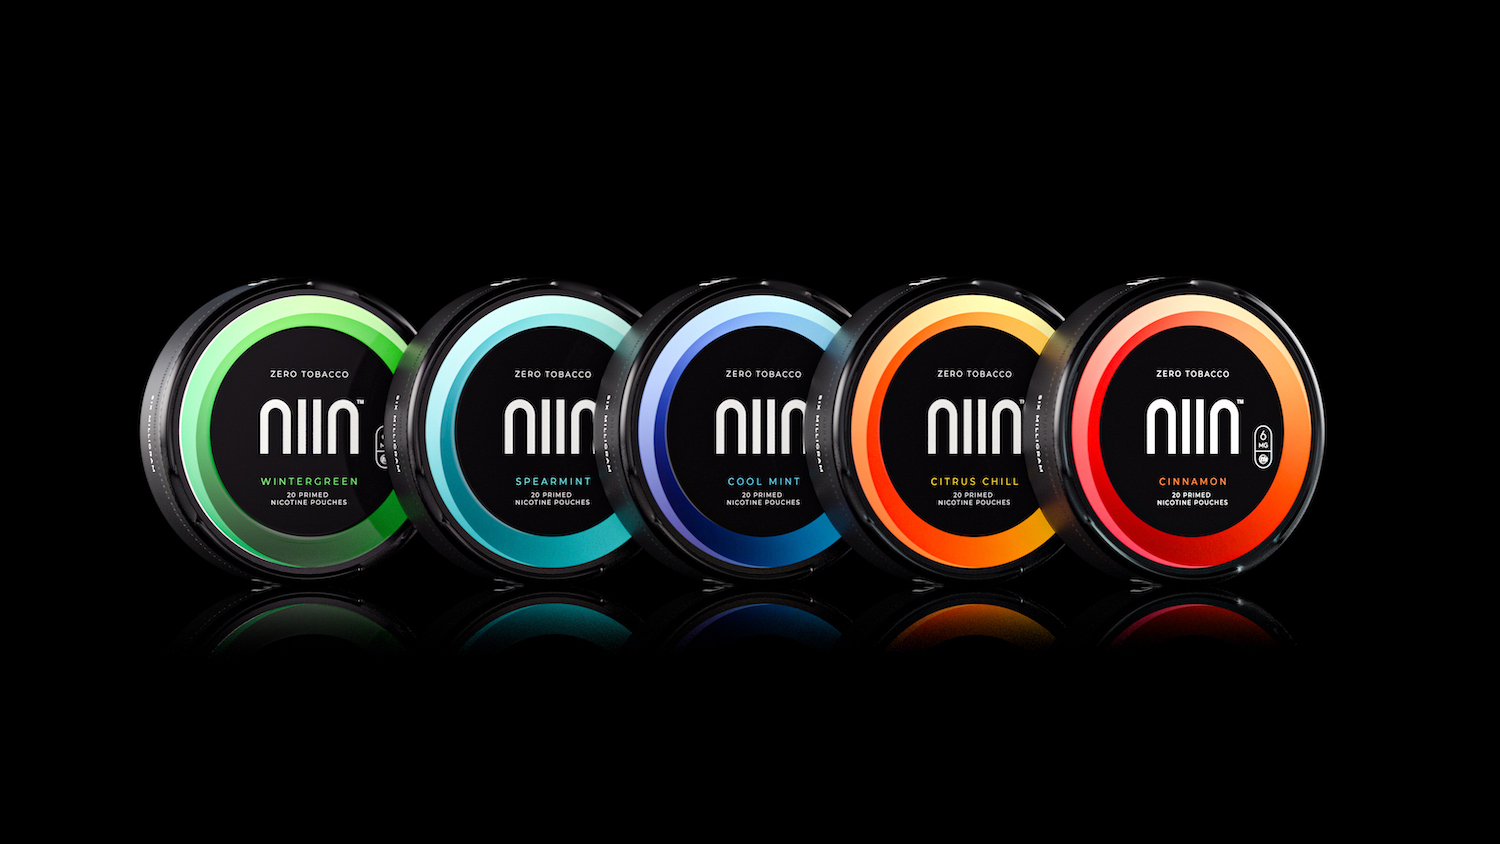 Synthetic Nicotine Brand NIIN™ Launches with its Flagship 100% Tobacco-Free Synthetic Nicotine Pouches Line